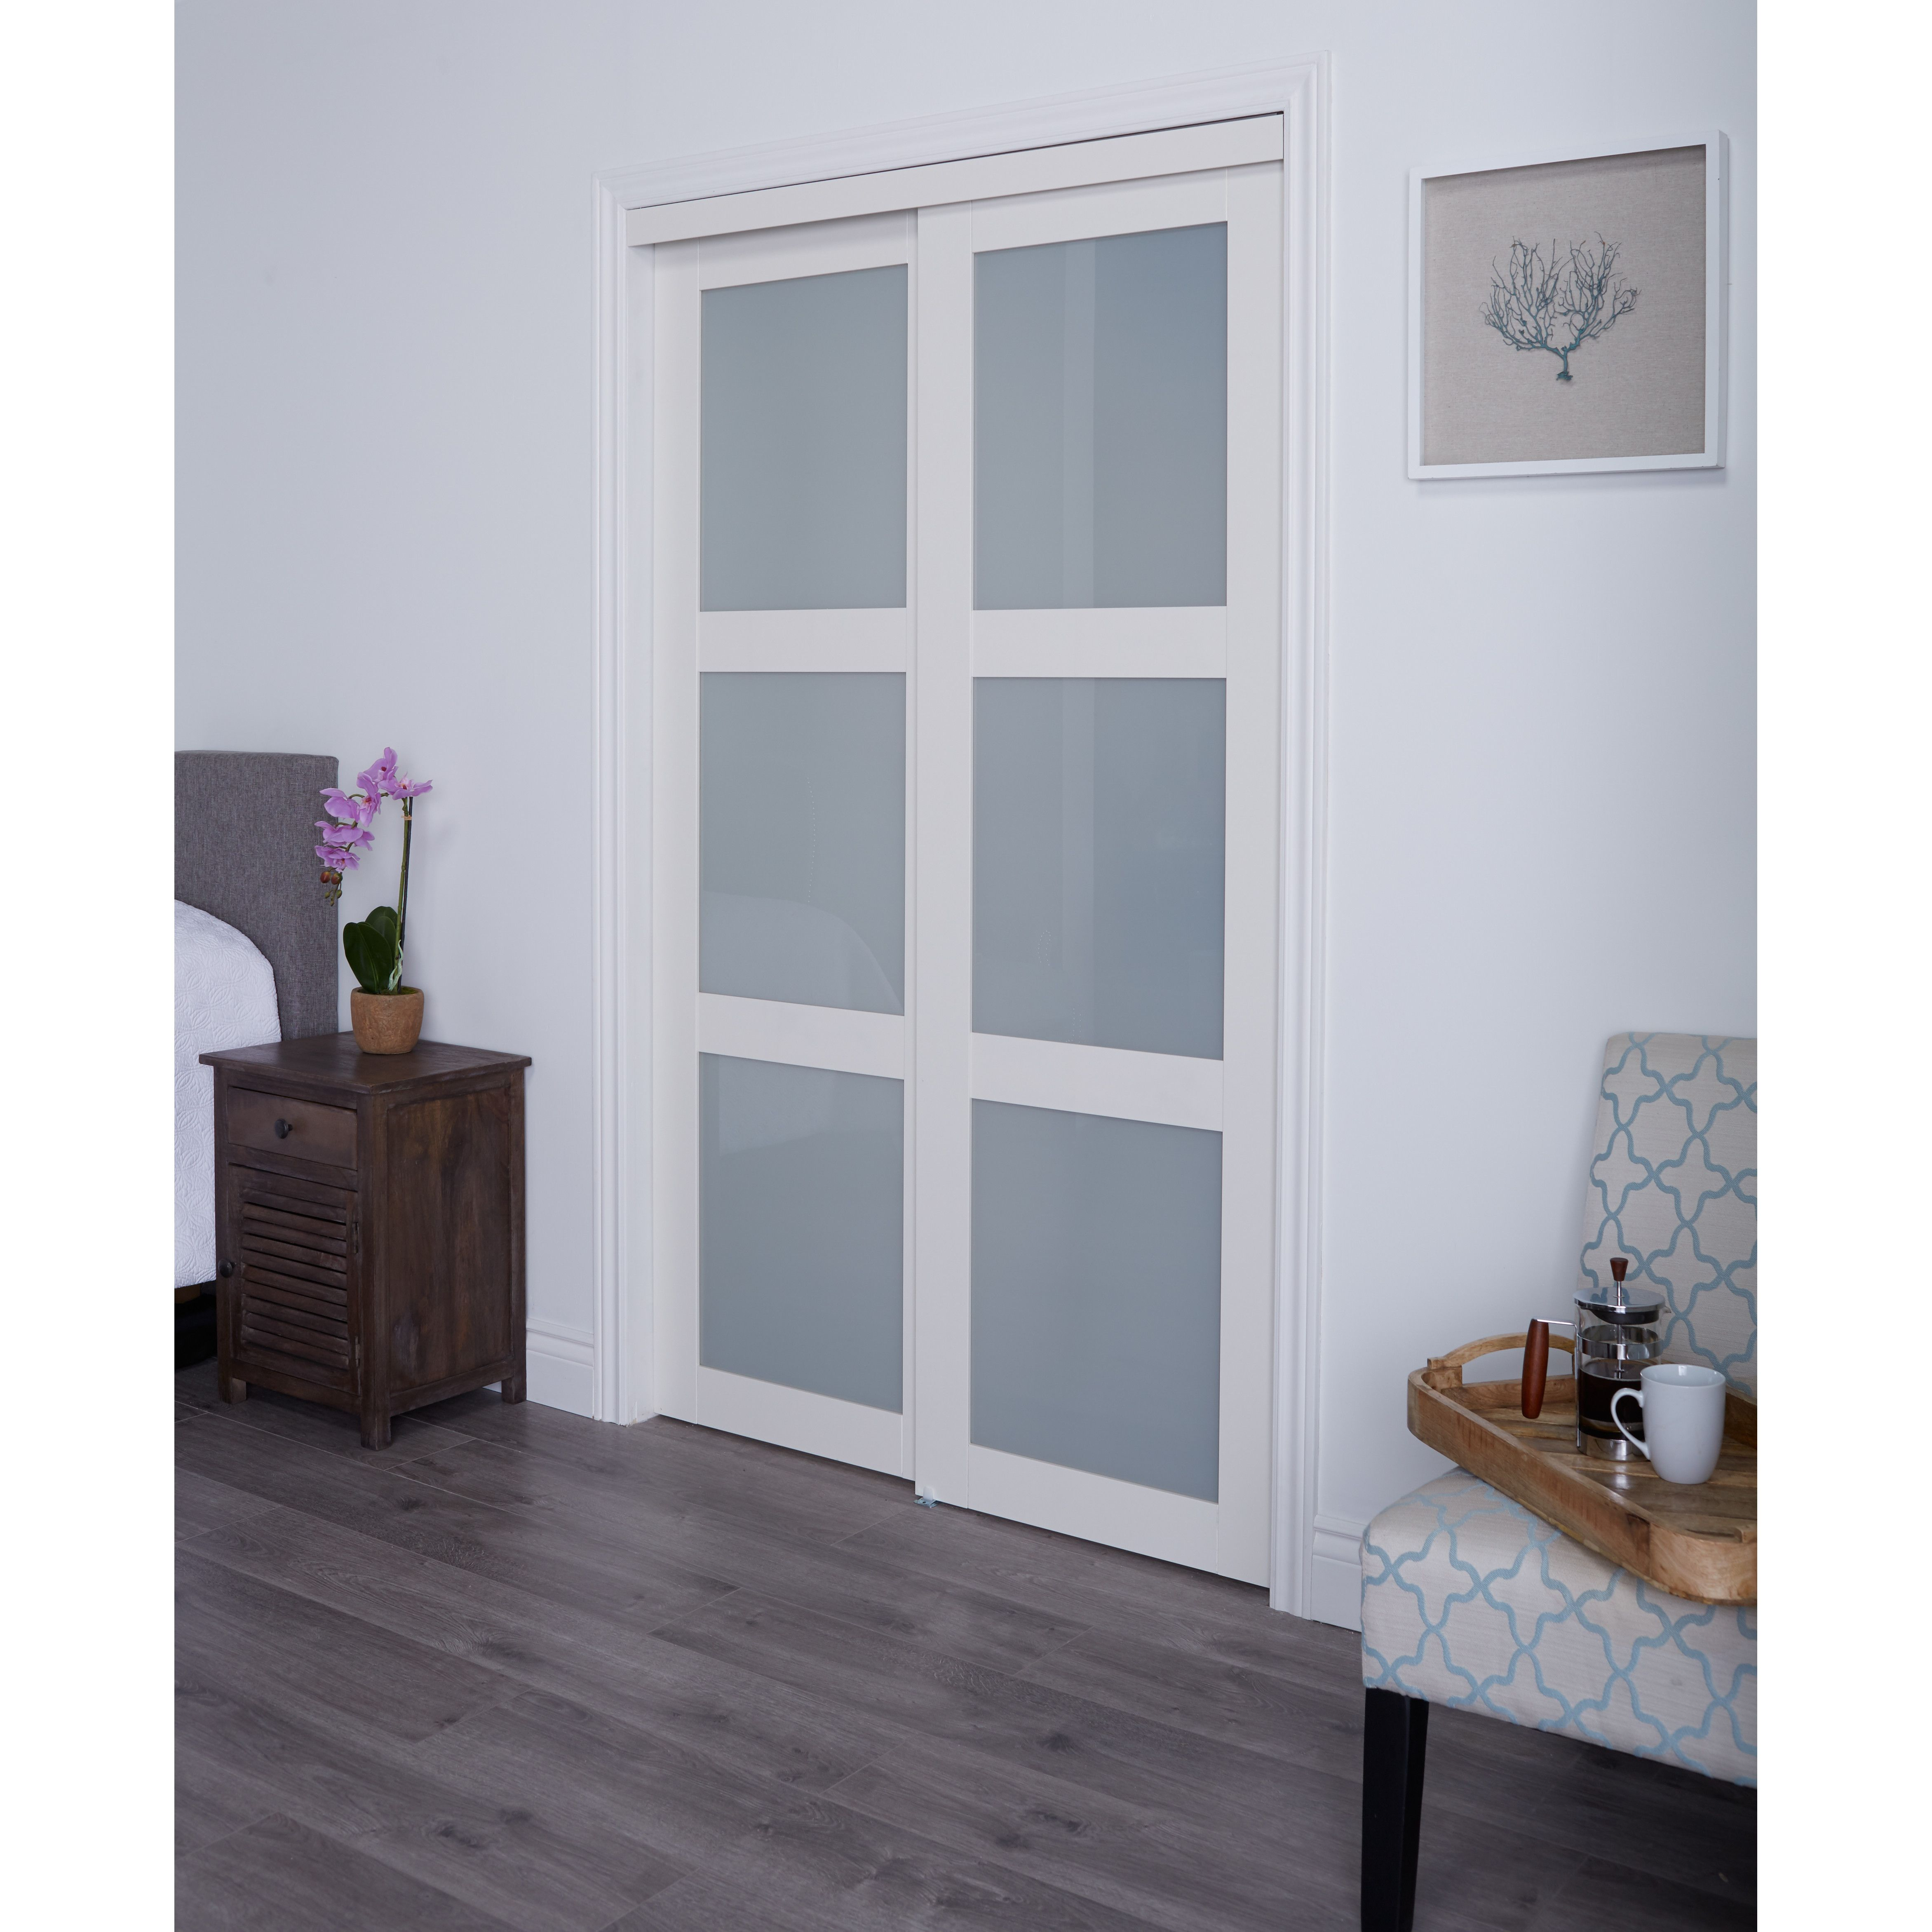 Glass Sliding Closet Doors Sliding closet doors, French